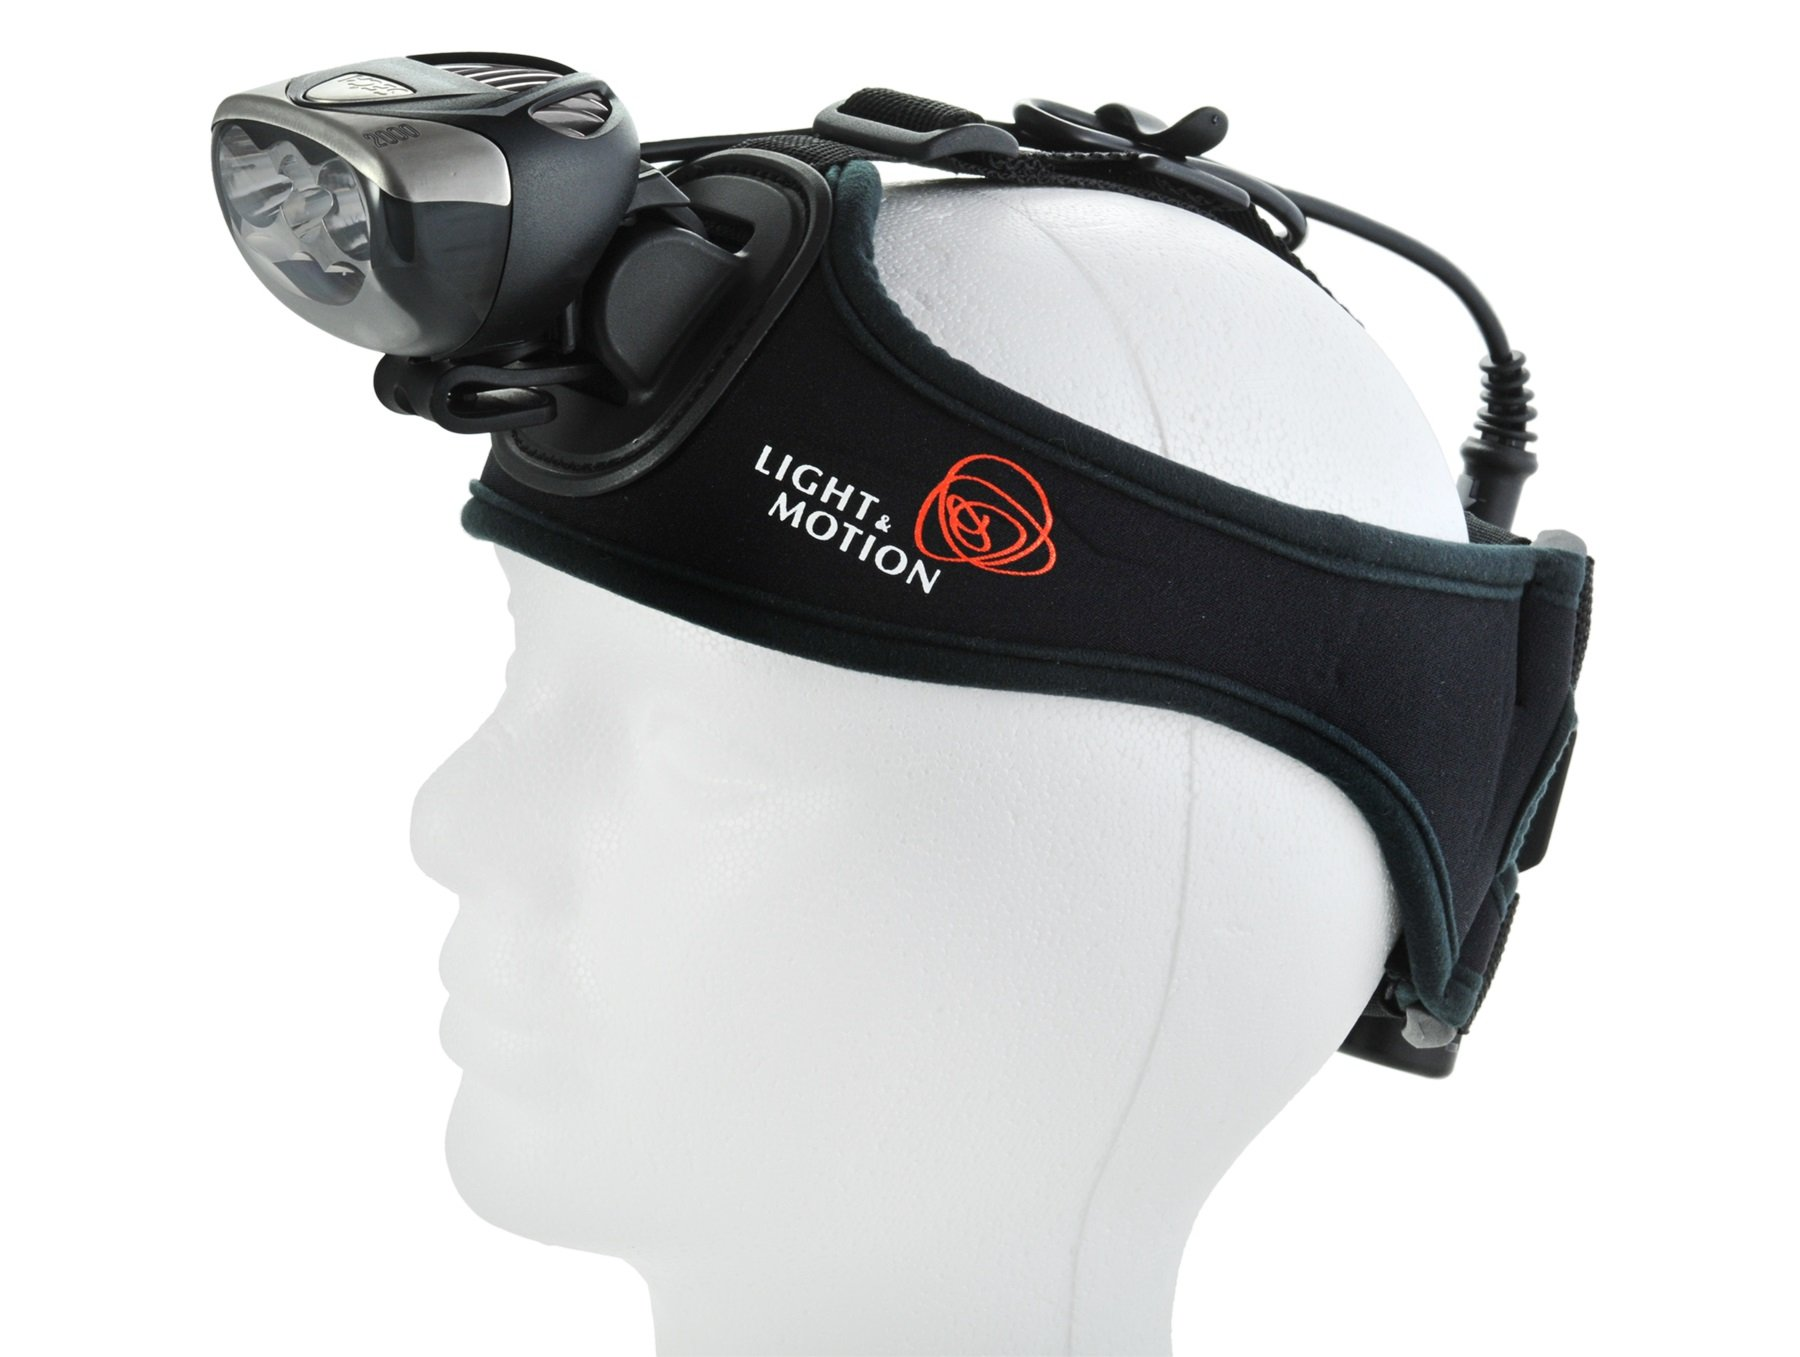 Light and Motion Seca 2000 3-Cell Race Rechargeable Headlight by Light and Motion (Image #3)